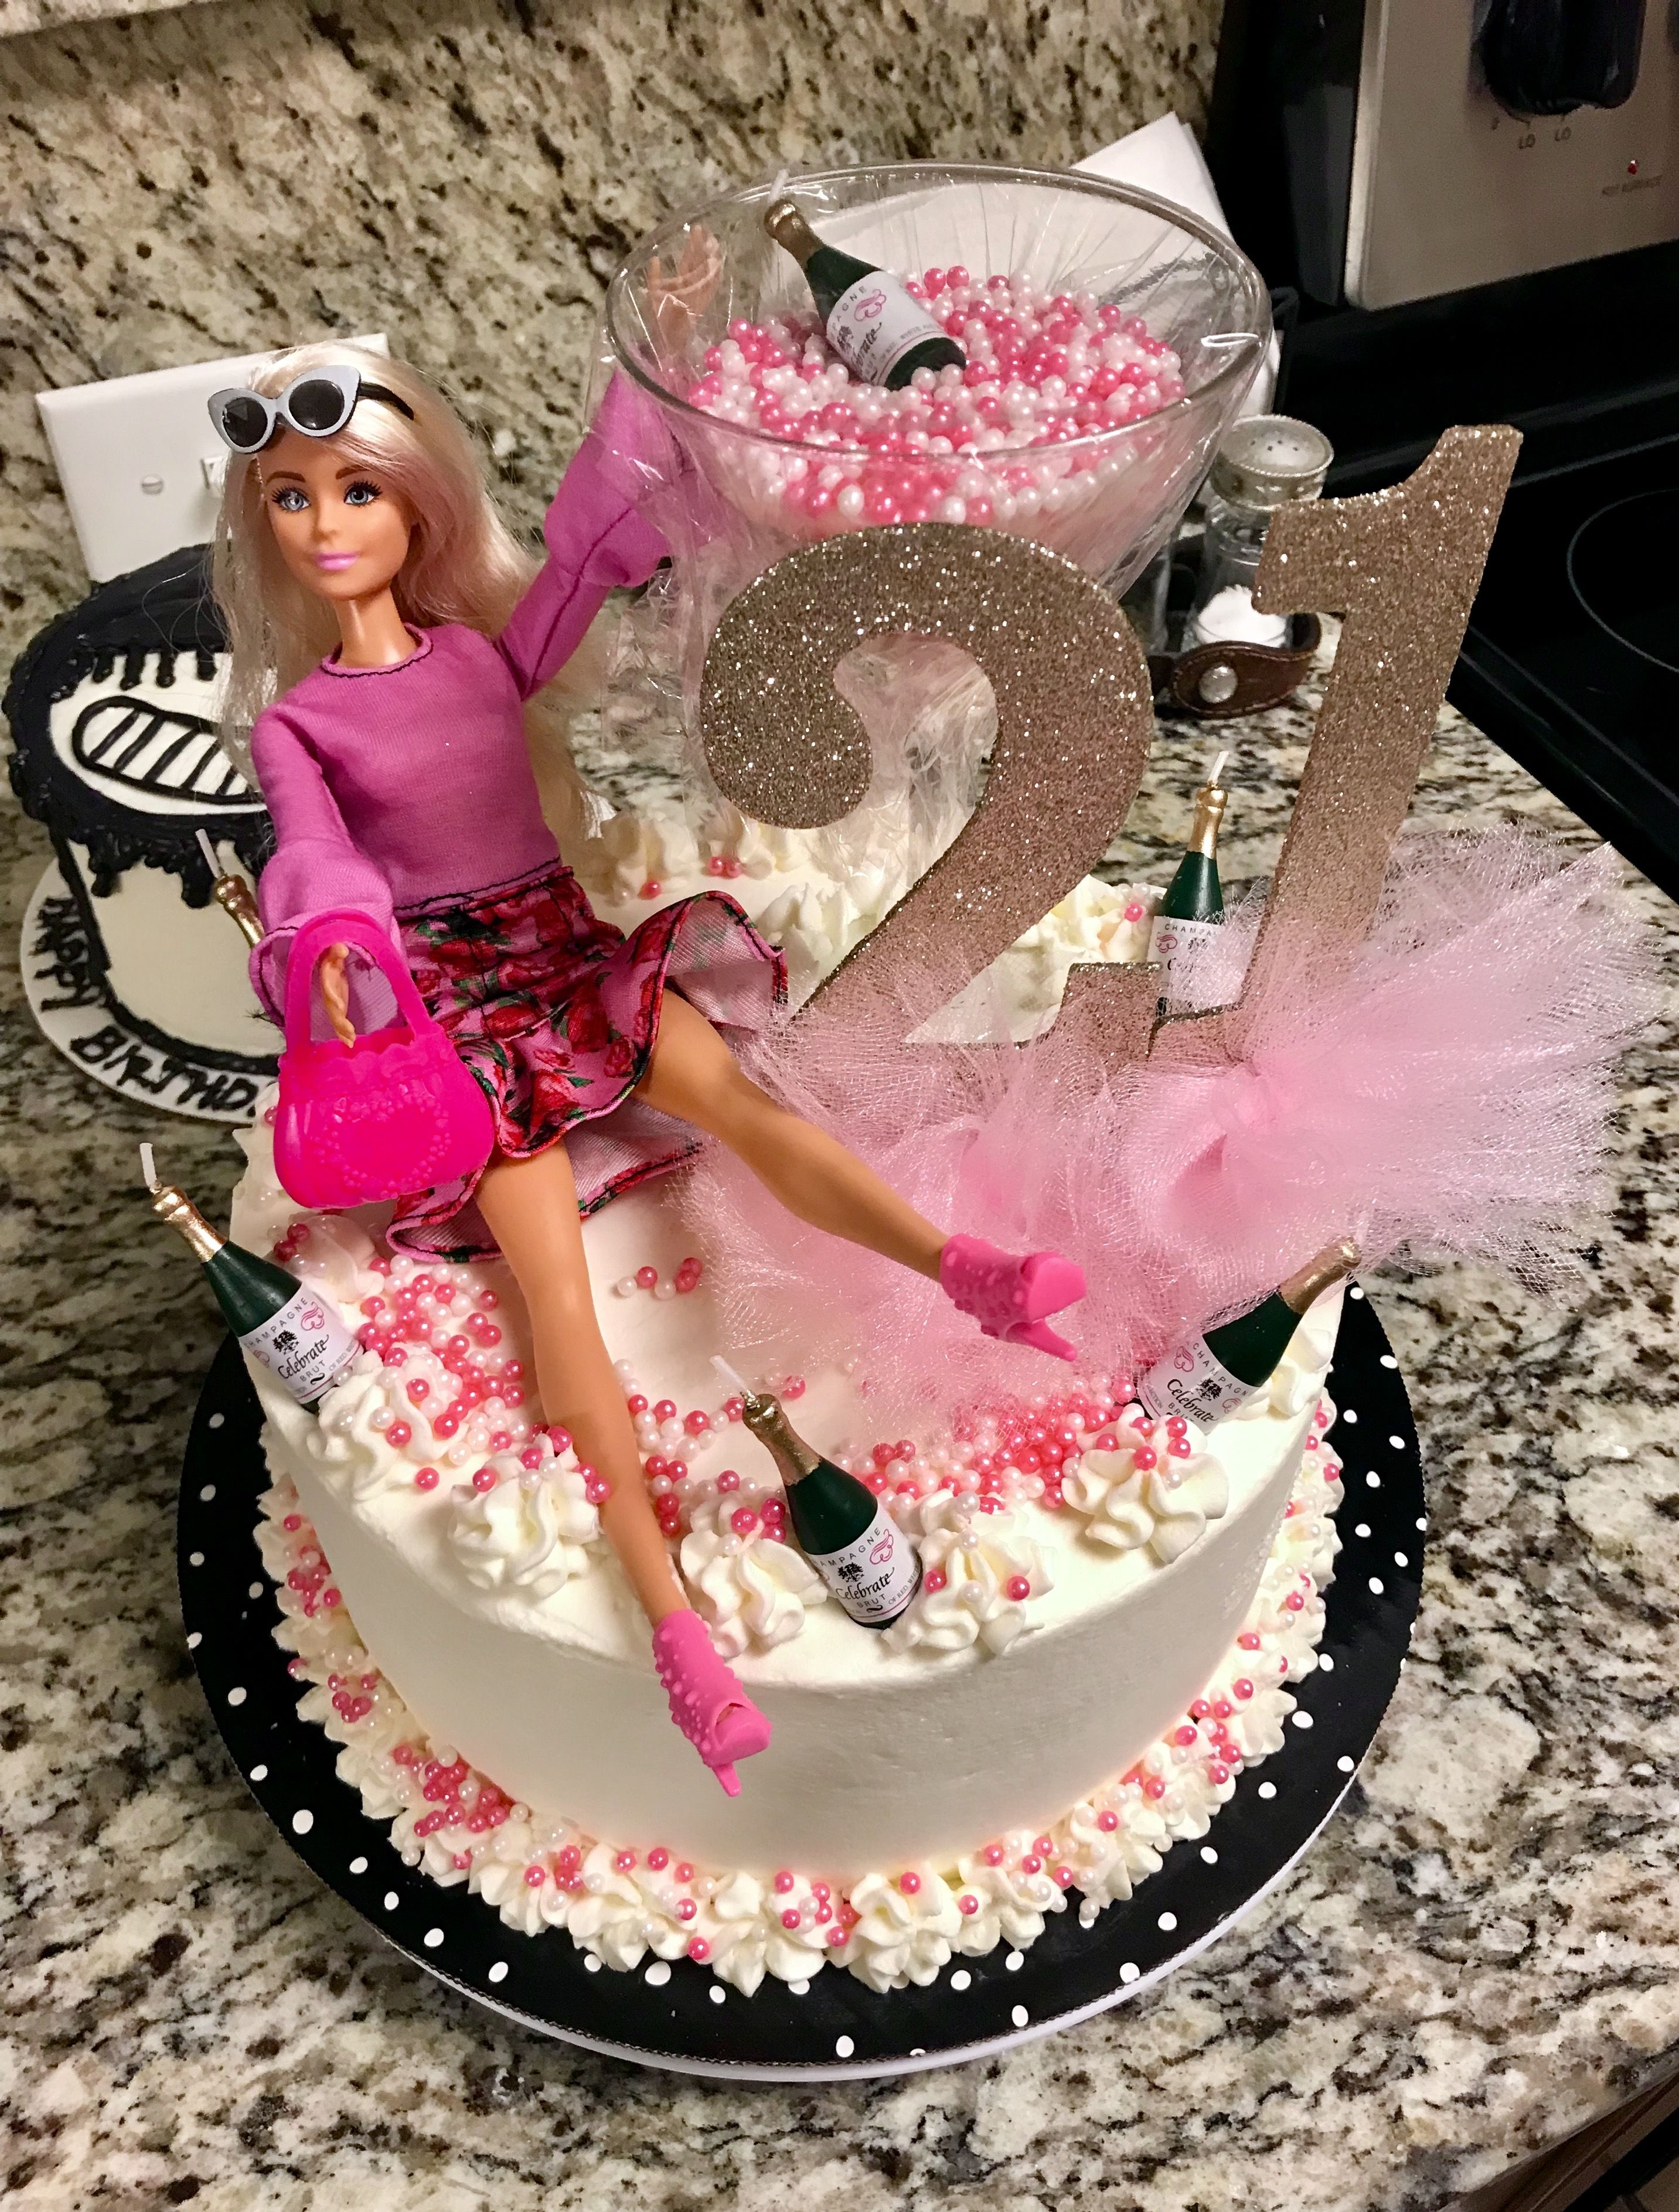 Pin by Brenda Goodwill on My Cakes in 2019 Birthday cake